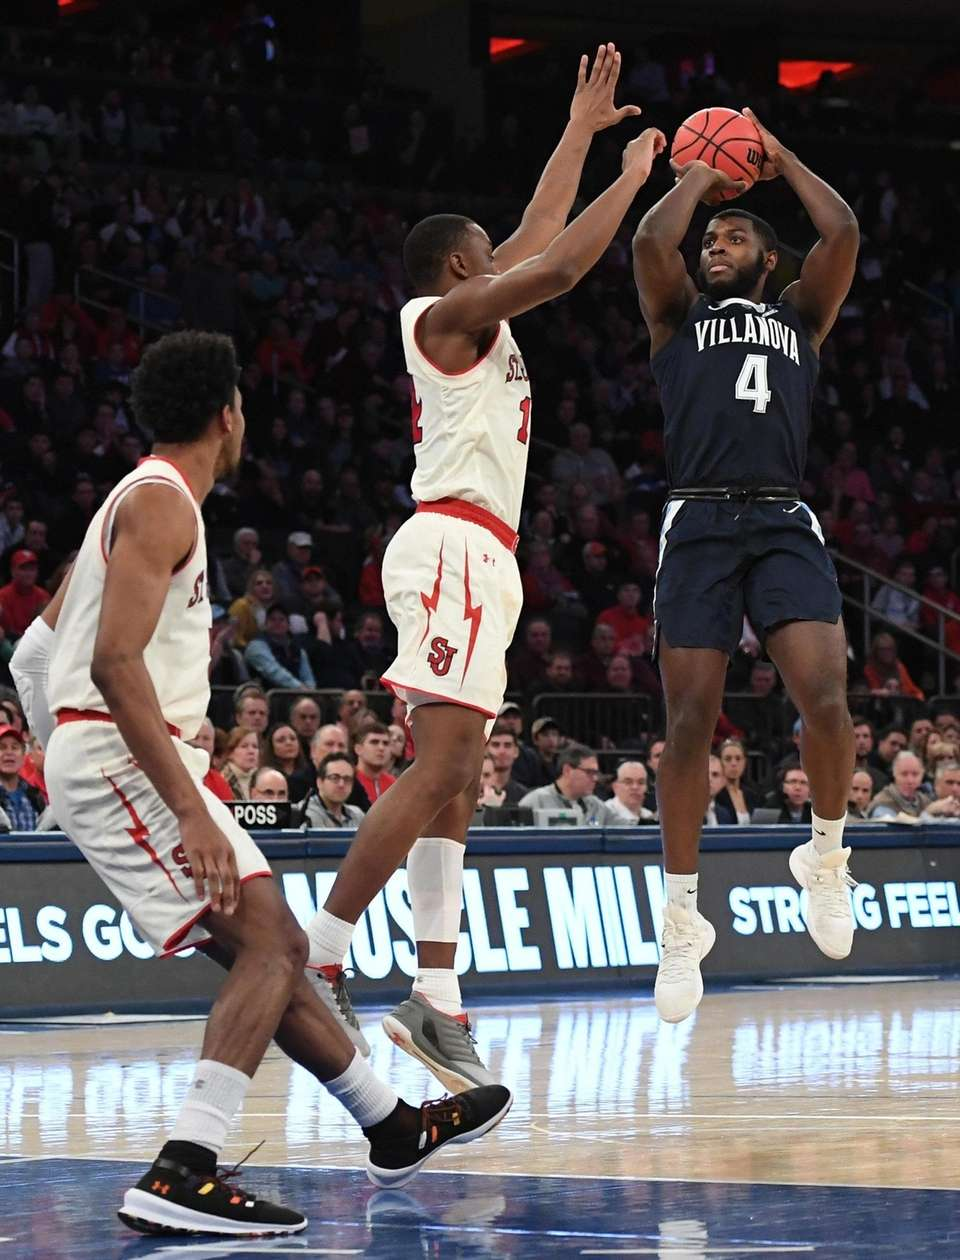 Villanova forward Eric Paschall shoots over St. John's